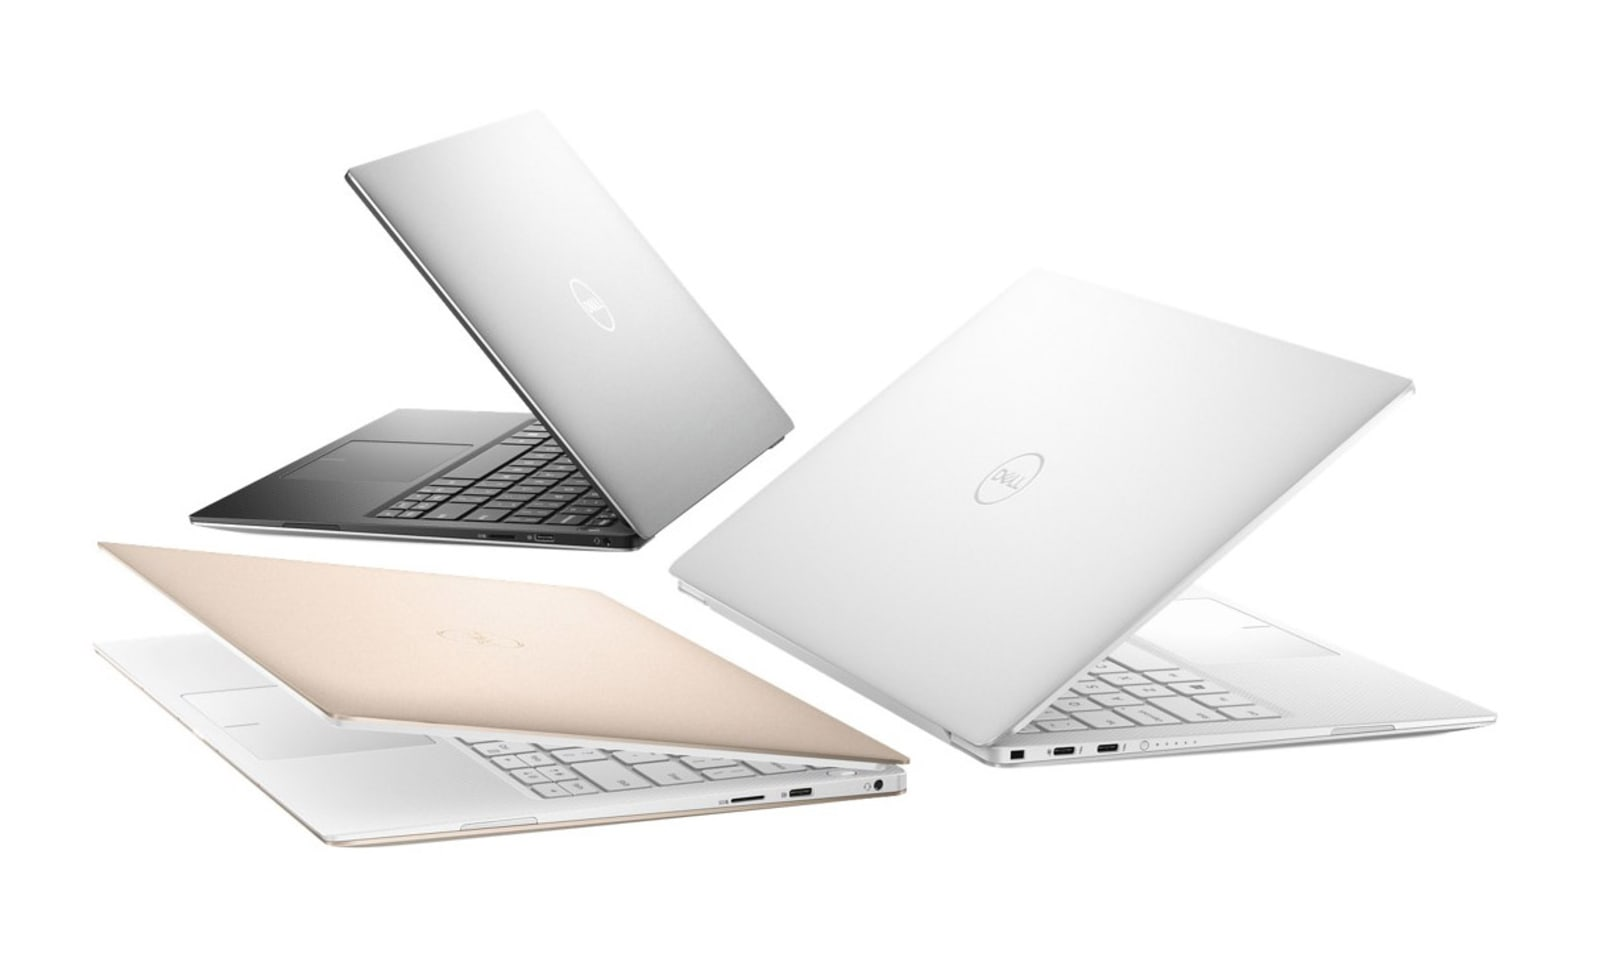 Dell XPS 13 Dolby Vision